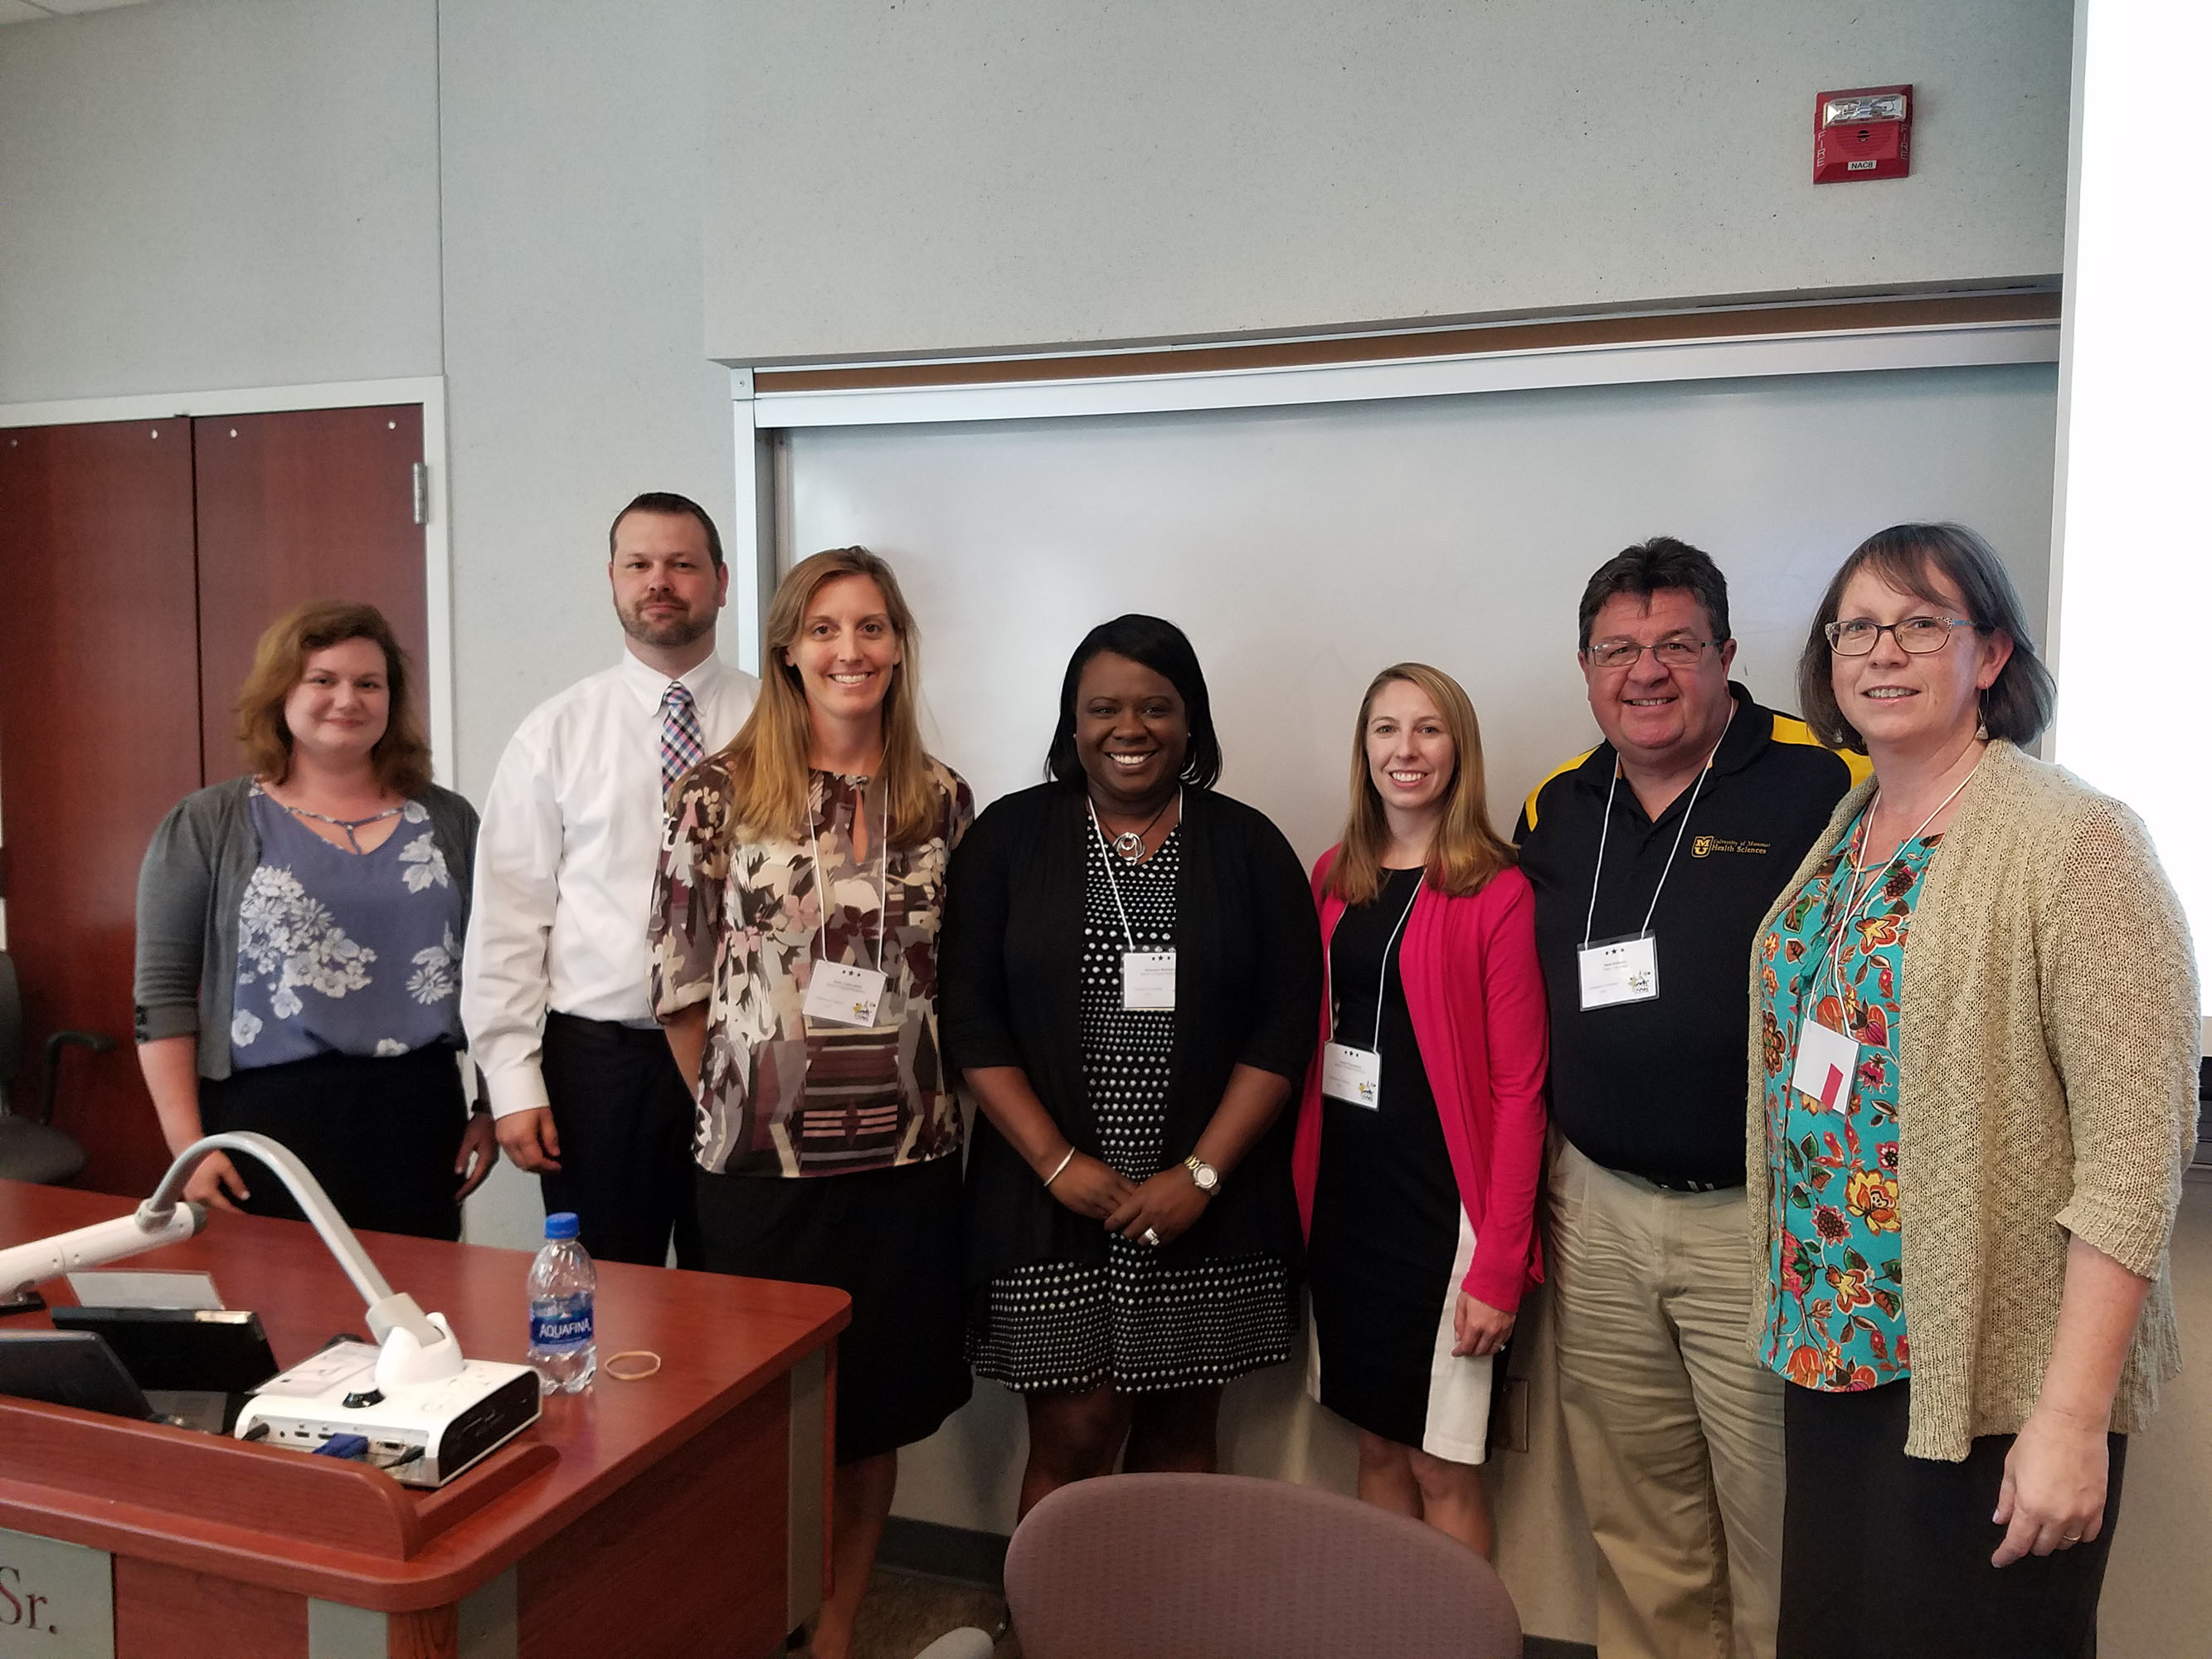 Grace Atkins, MU Libraries; Dale Sanders, the Mizzou Store; and Health Sciences faculty members Molly Vetter-Smith, Botswana Blackburn, Jenna Wintemberg, Mark Kuhnert and Carolyn Orbann recently presented their work in AOER at the Mizzou Celebration of Teaching.